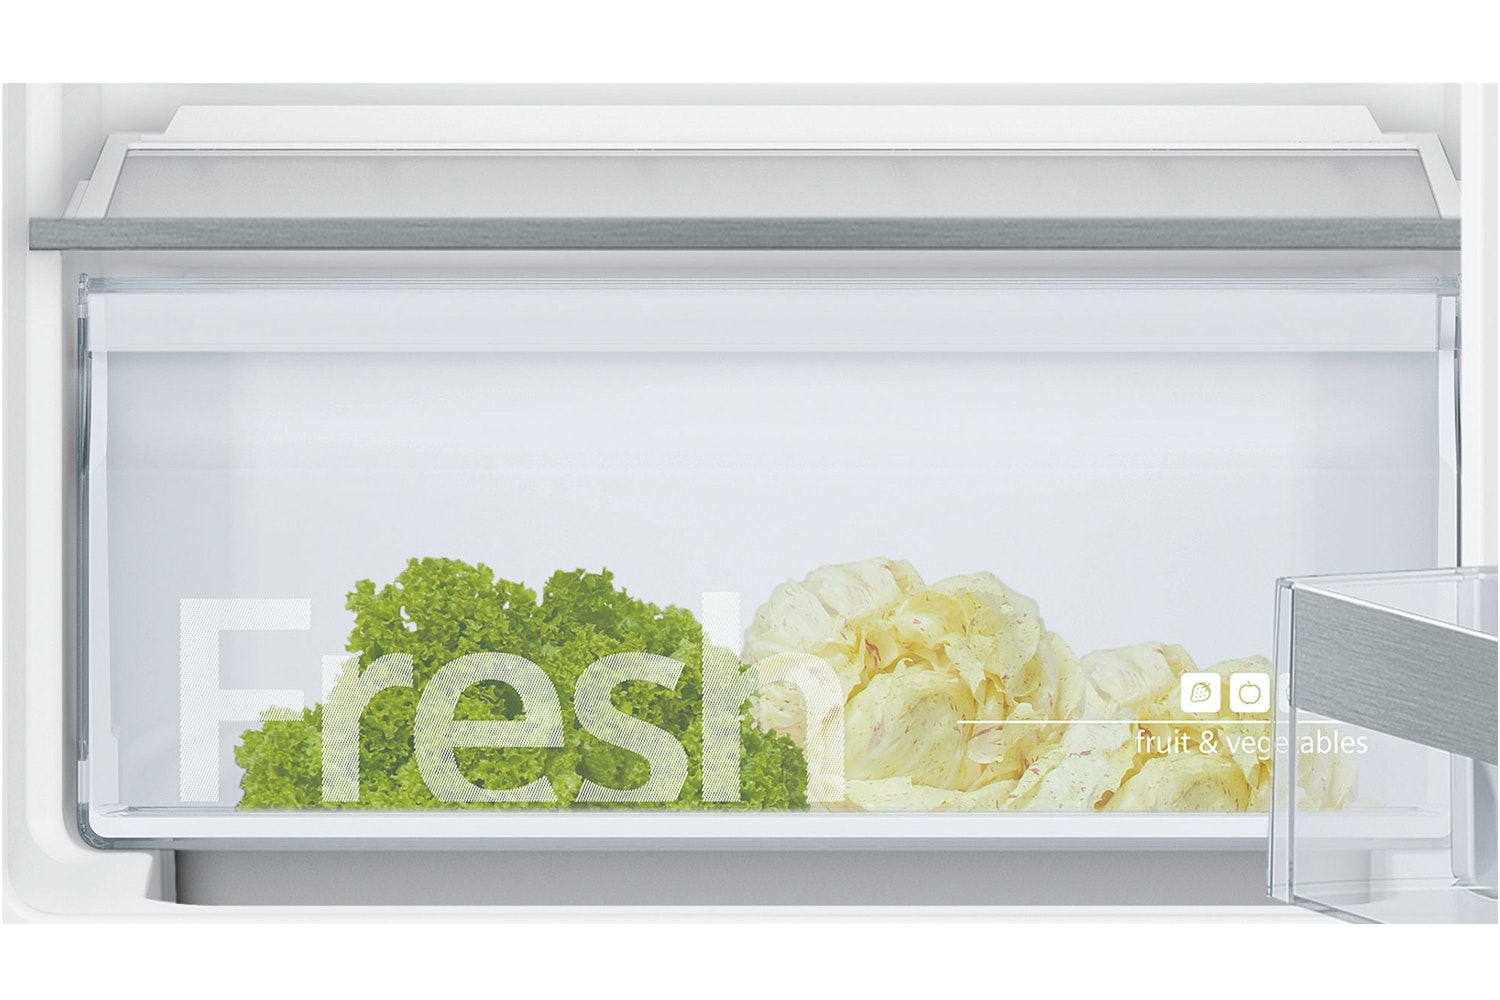 Siemens Built-in Fridge Freezer | KI87VVF30G